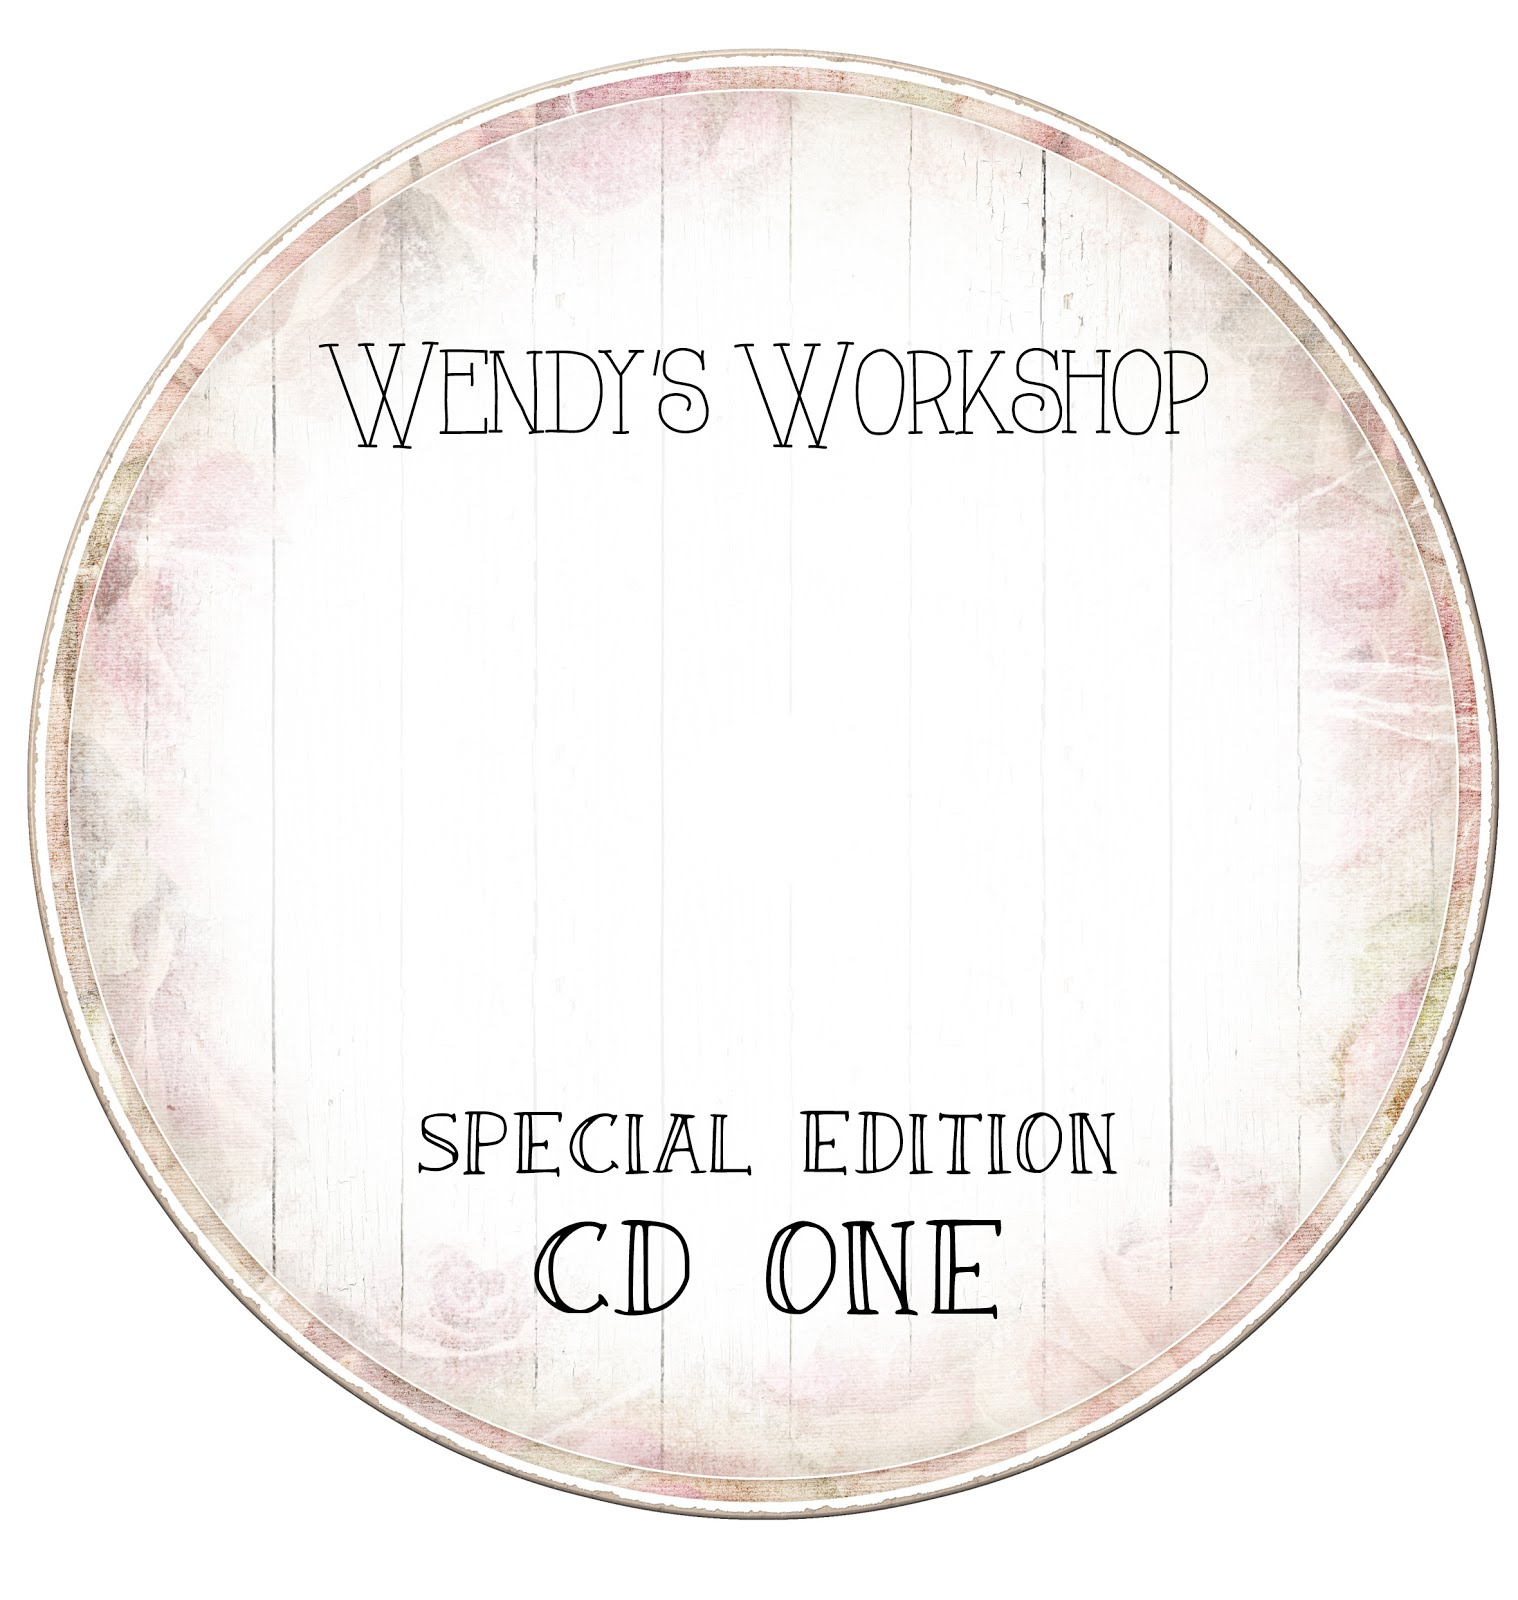 WENDY'S WORKSHOP SPECIAL EDITION ONE £14.99